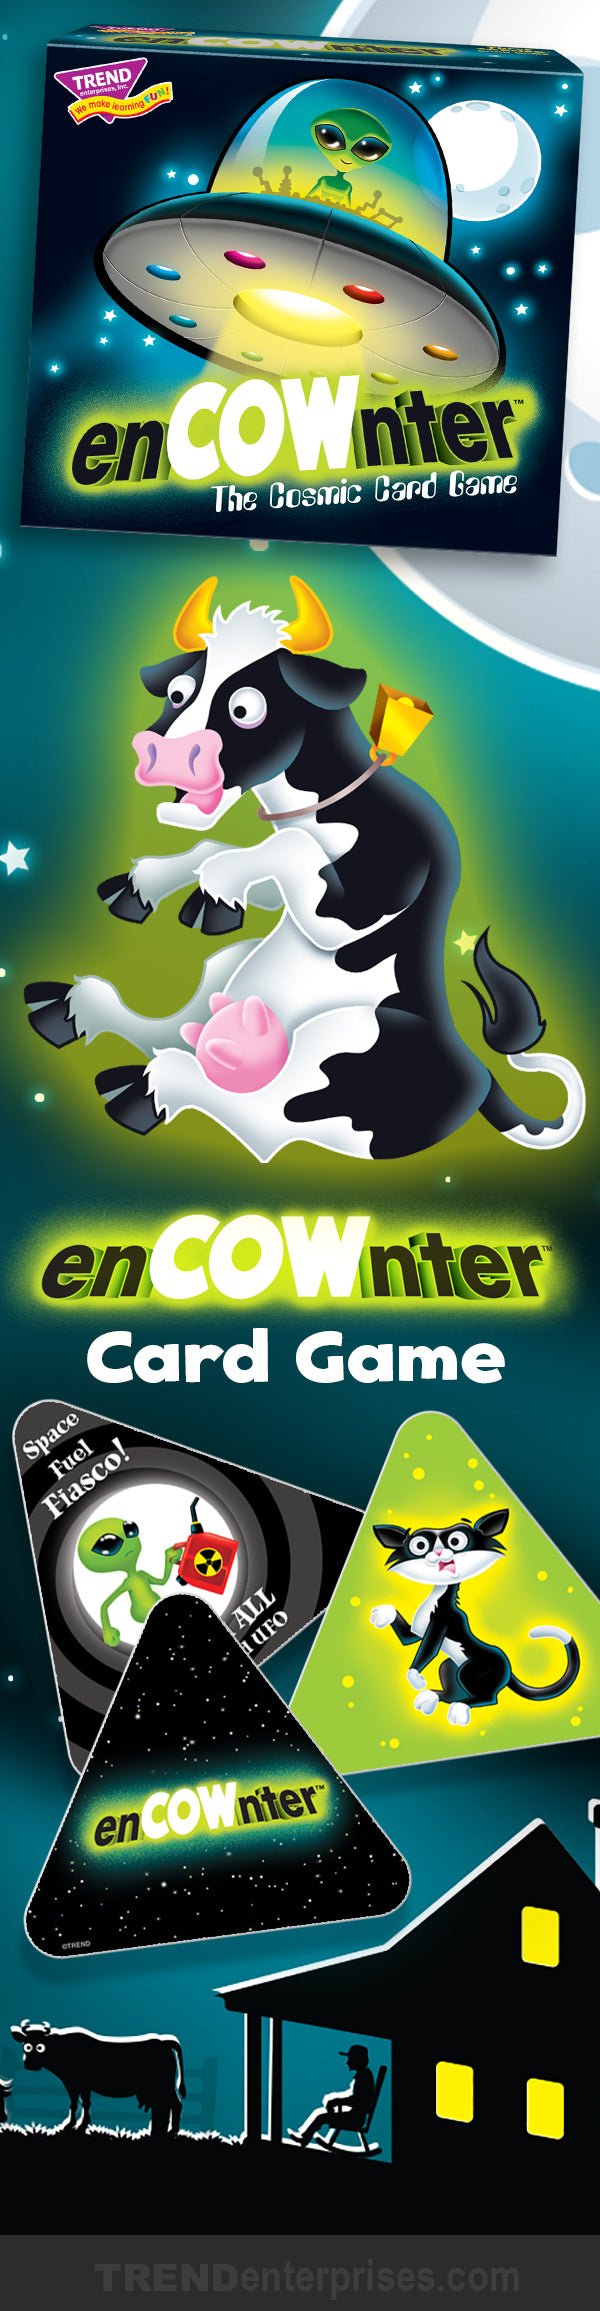 enCOWnter™ cow abduction card game for kids! Greetings, fellow aliens. It's time for some chance enCOWnters. Leave your opponents in the cosmic dust by quickly capturing earthly things to complete a mission first.